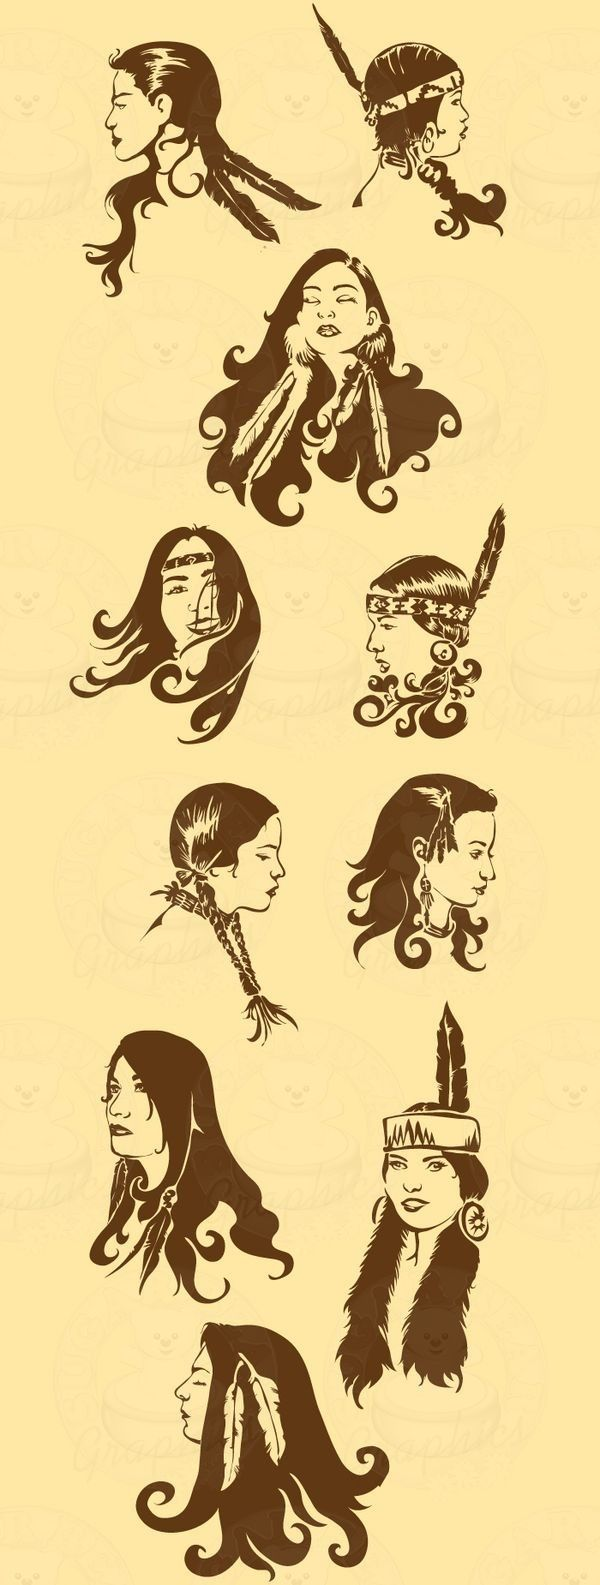 25 best YOUTH - the future images on Pinterest | Native american ...